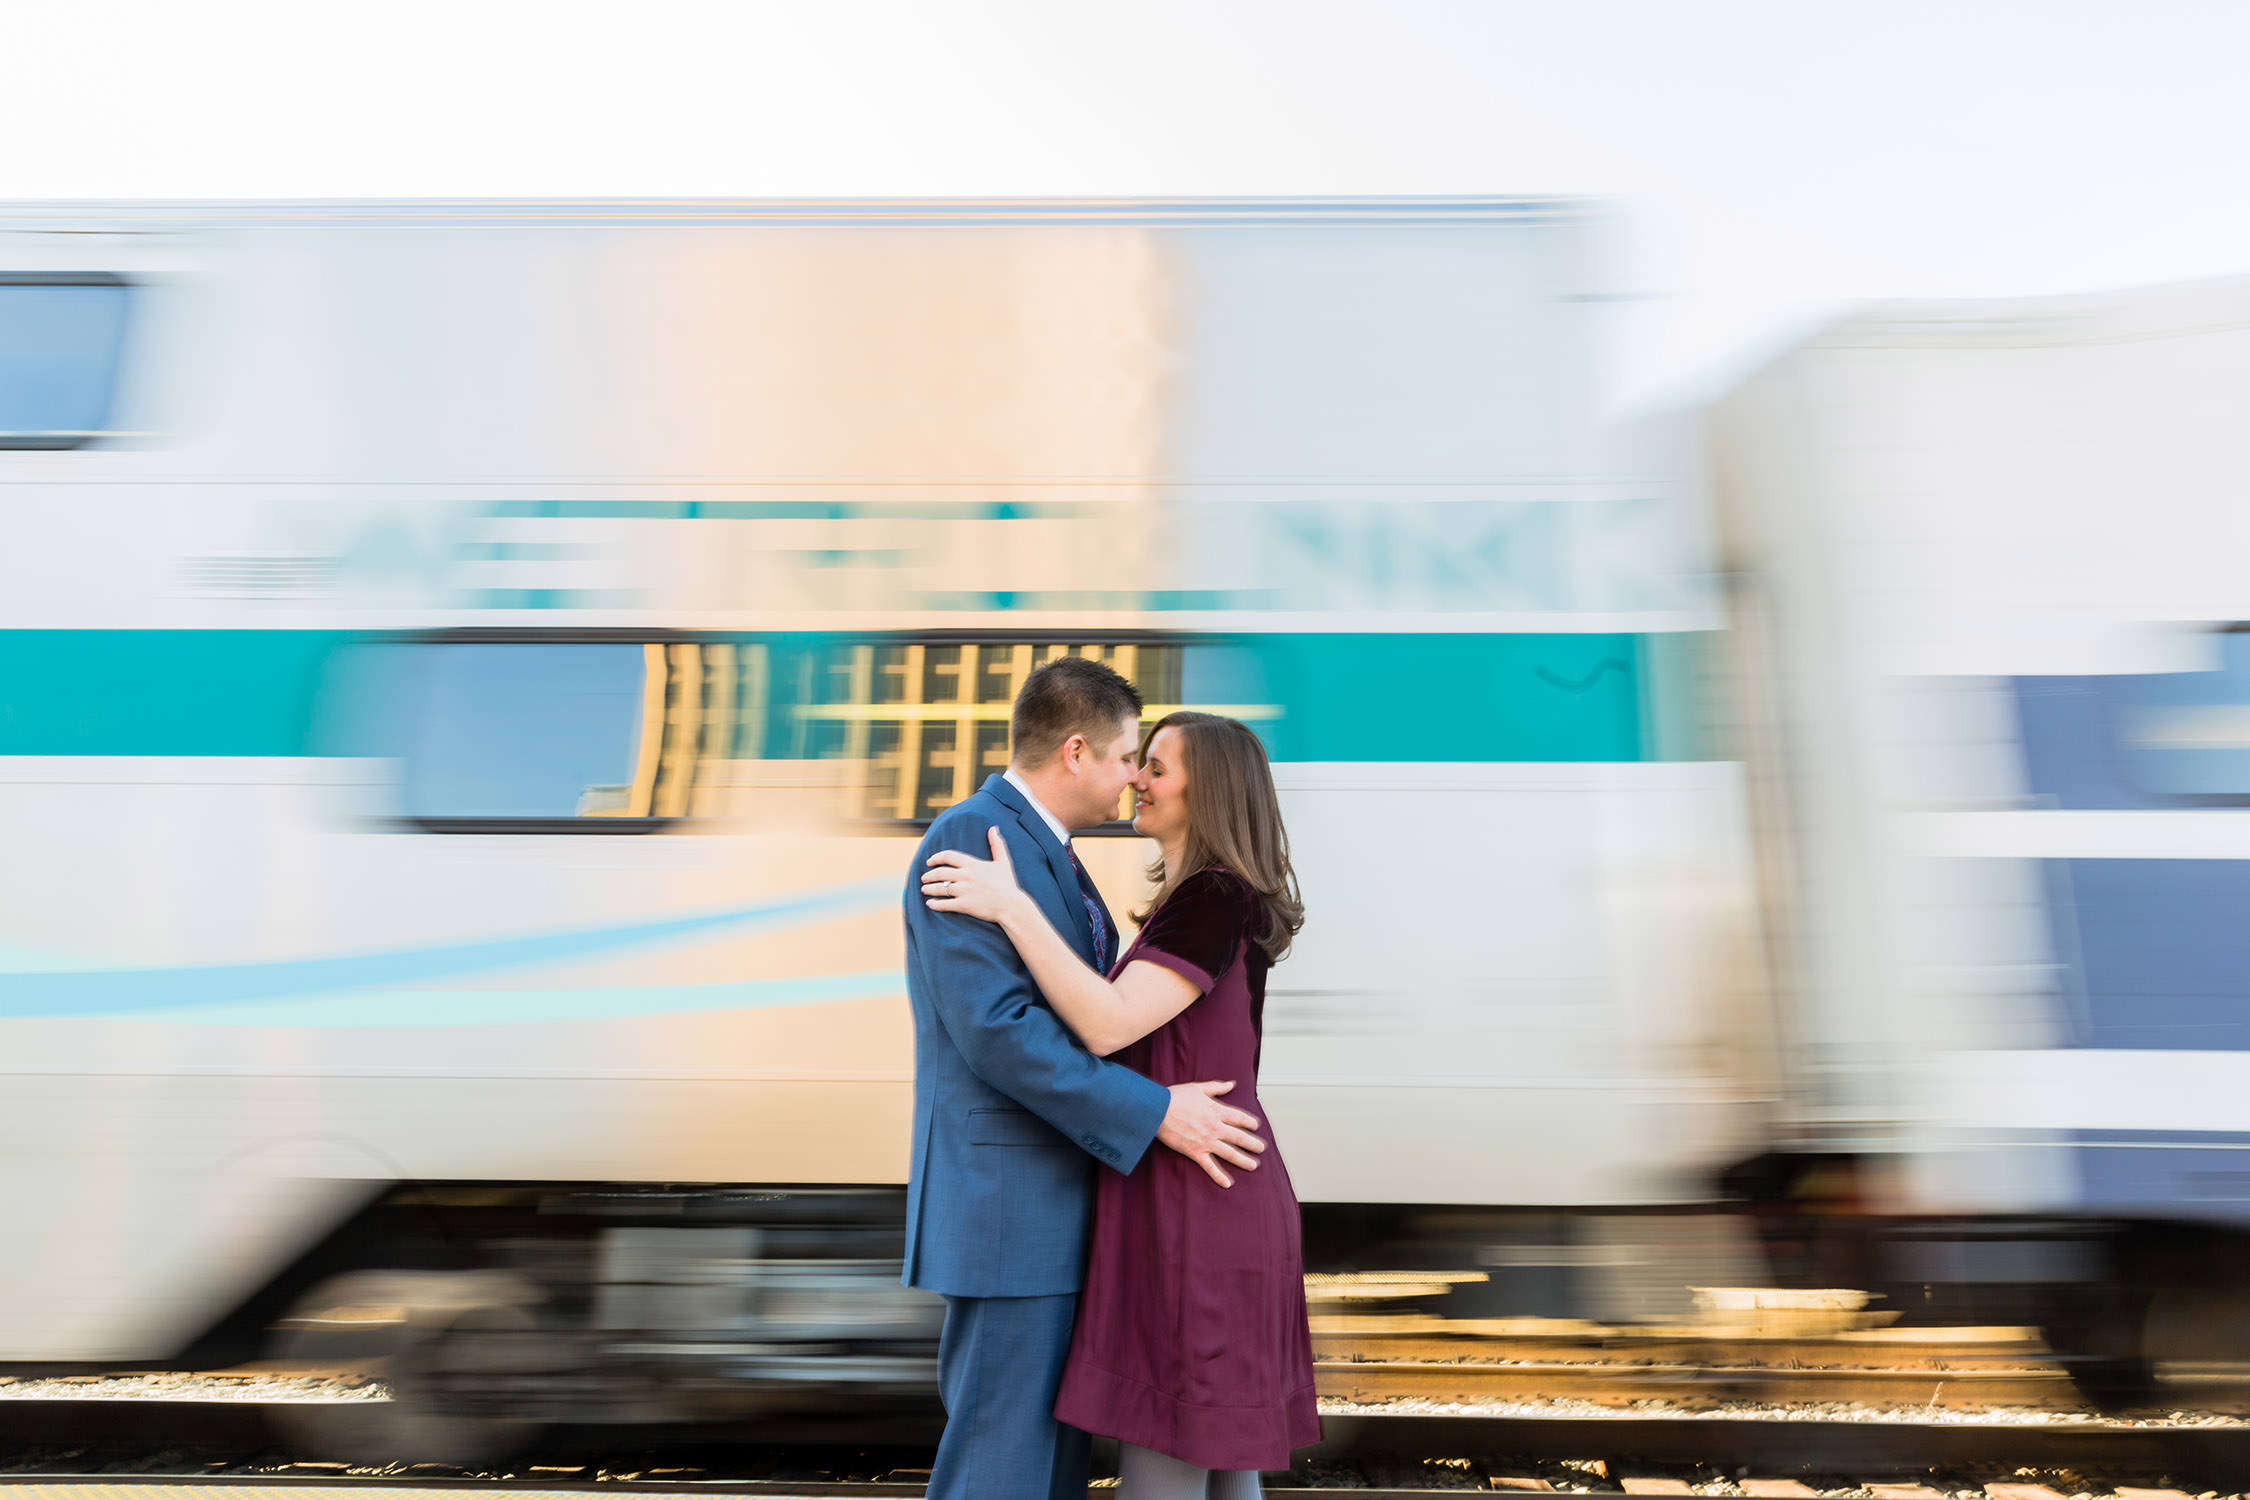 Engagement Session at the Union Station in Los Angeles, CA